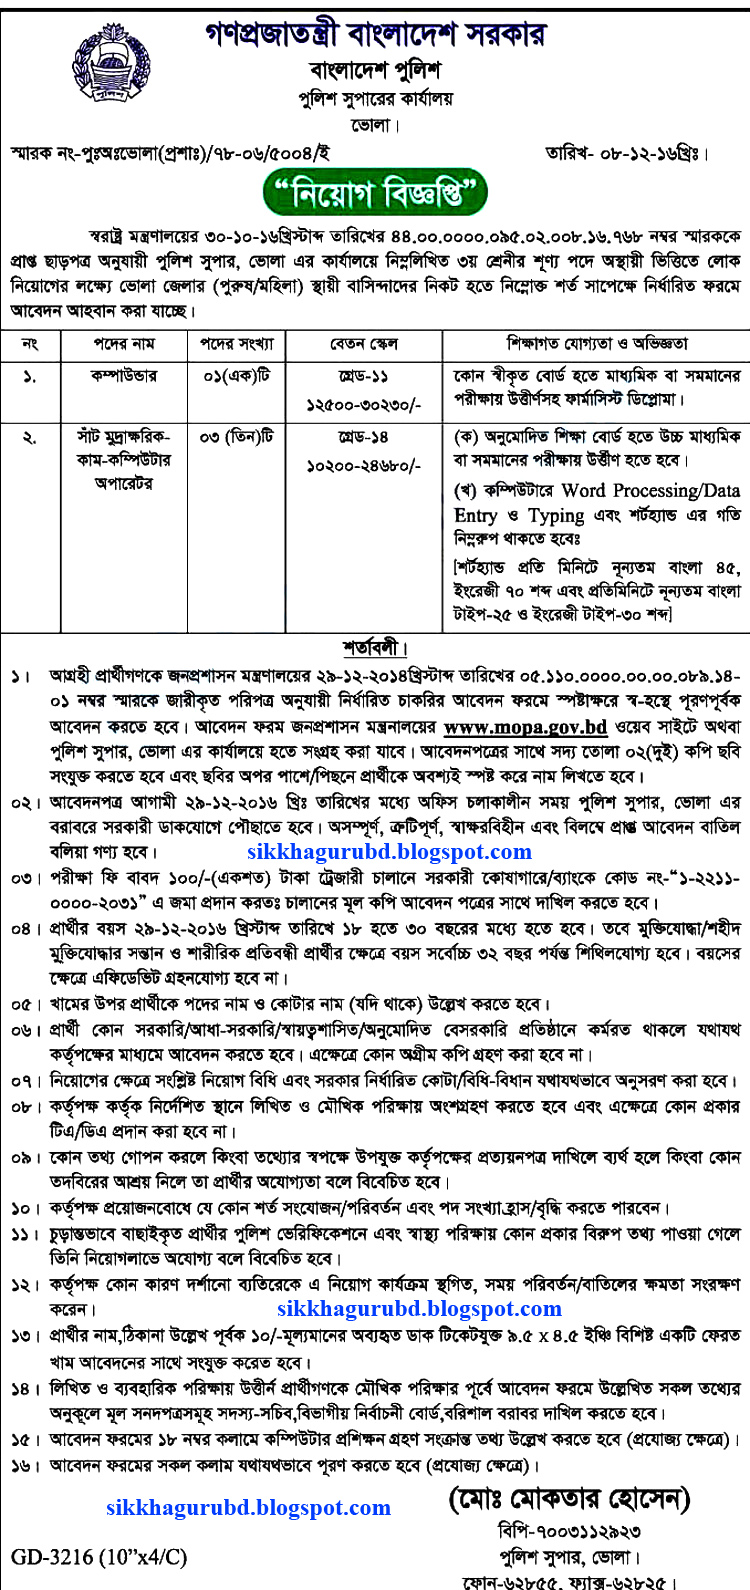 desh Police Sub-Inspector (SI) Job Circular 2016 | www.police ... on police training form, police employment application, police job brochure, police online application form, police incident report form, police organization chart, police resume form, police departments, police cover letter, police contact form, police interview form, police thank you letter, police complaint form, police information form, police job resume, police job interview, police job benefits, police forums, police job requirements, police officer application,